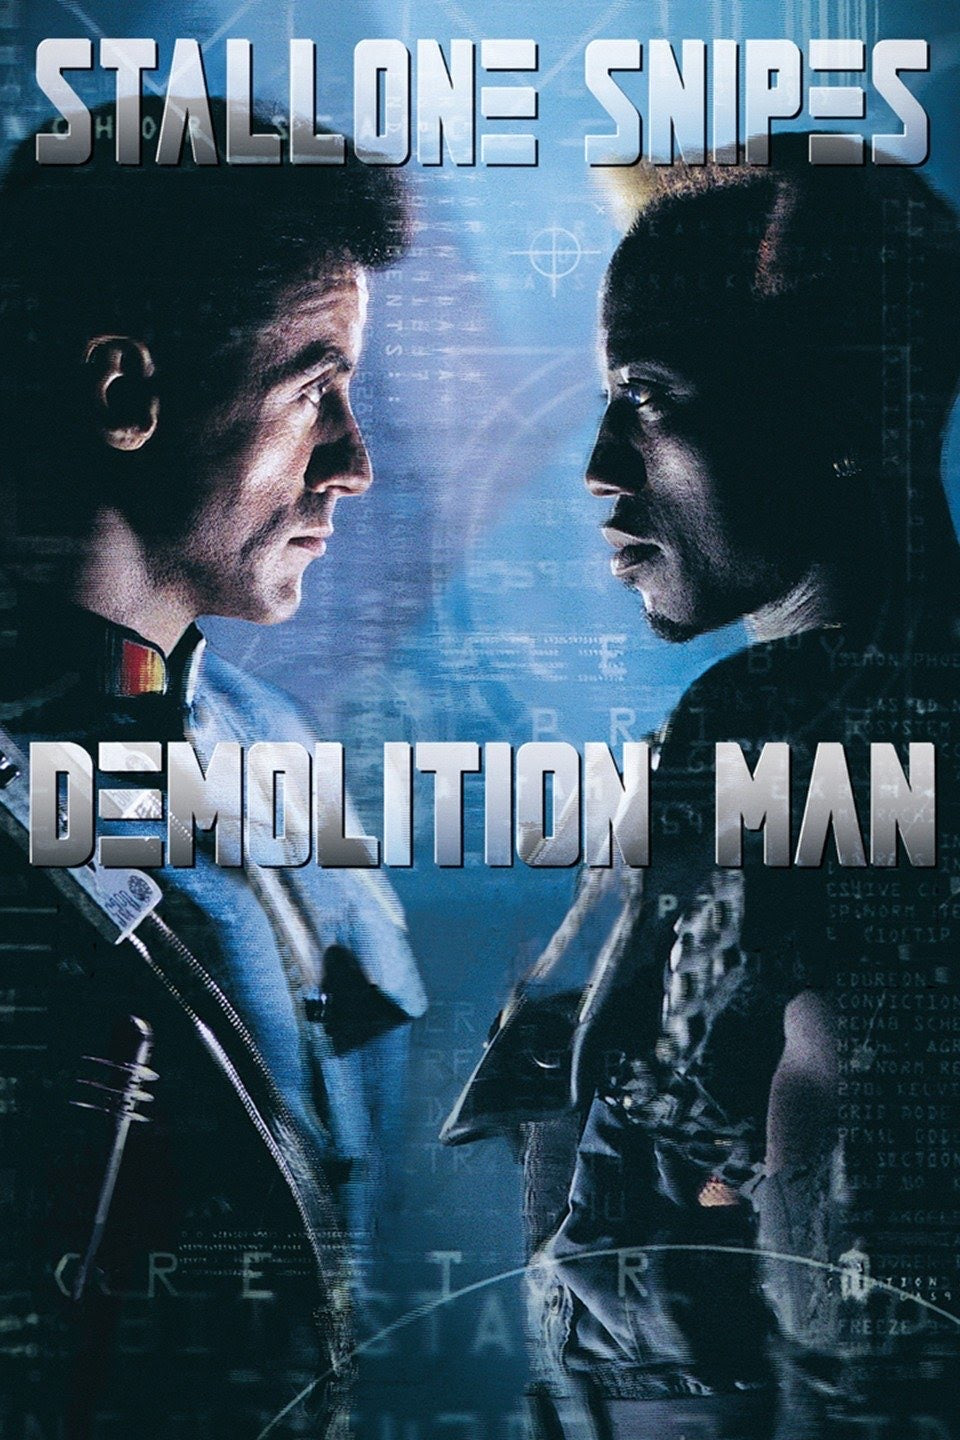 Demolition Man (1993) Movies Anywhere HD code